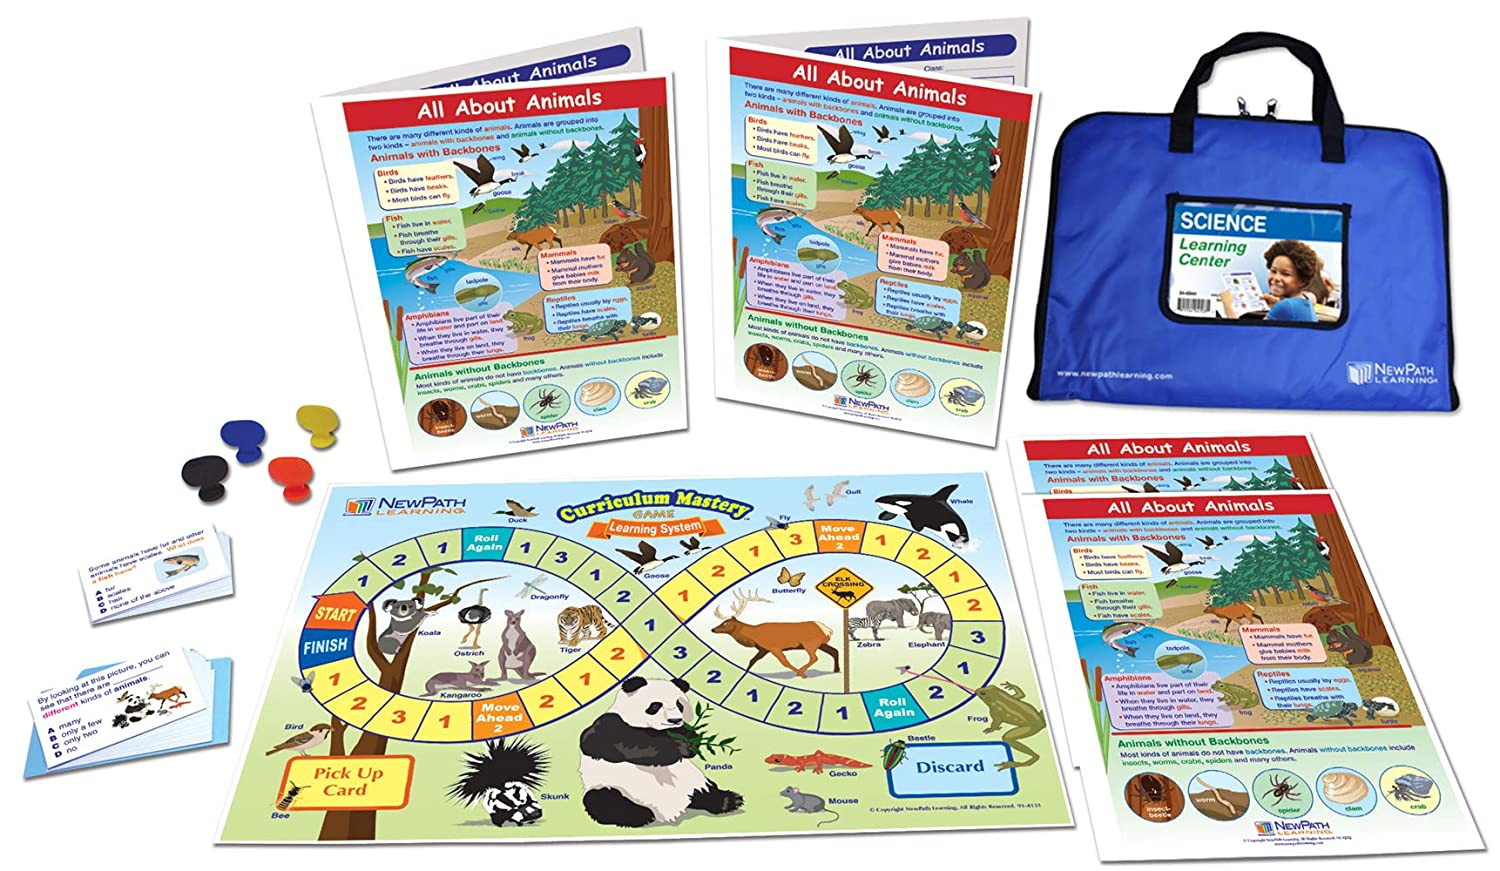 All About Animals Learning Center Game - Grades 1-2